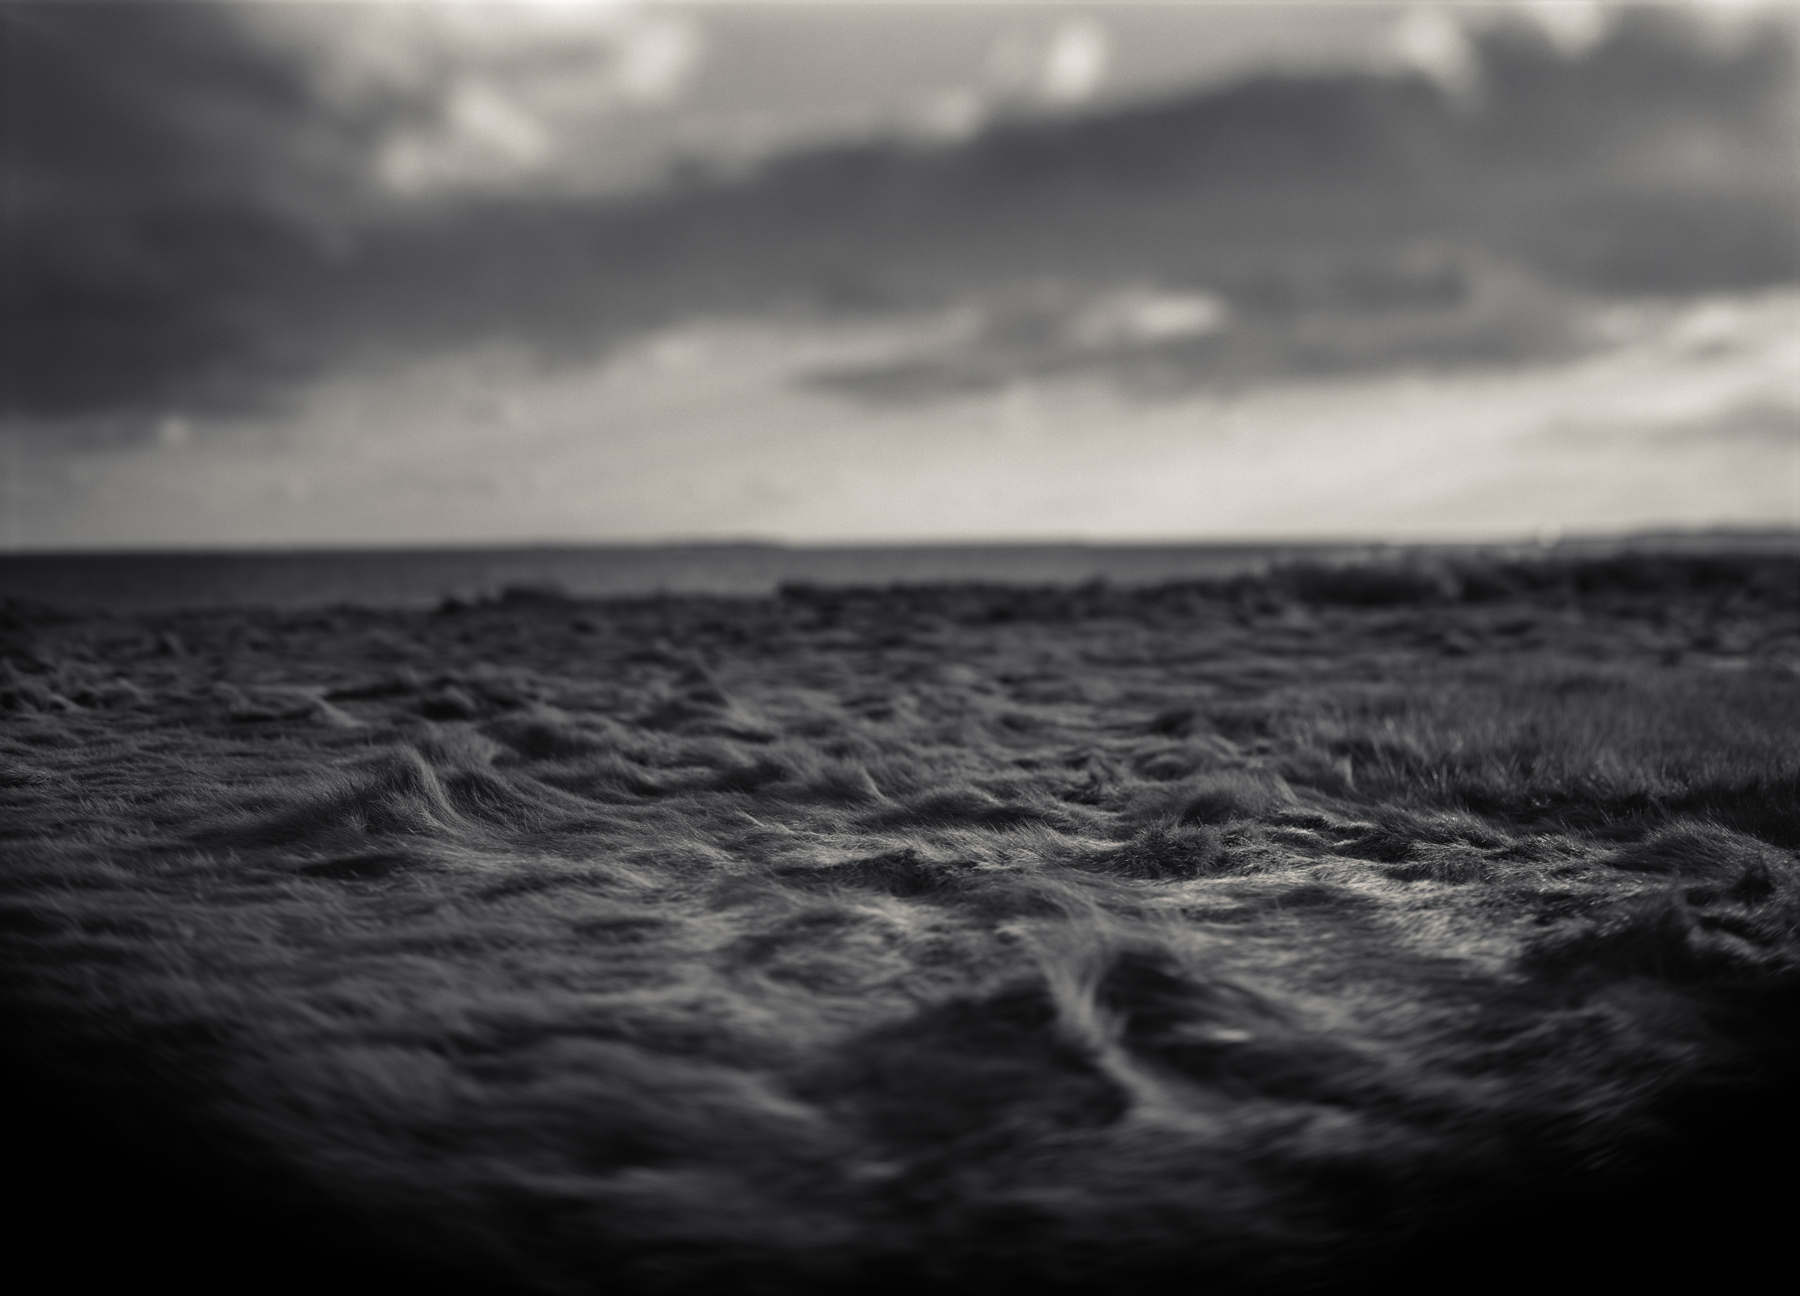 Where There Is No Boat, I Will Put a Boat , Platinum/Palladium, Ron Cowie